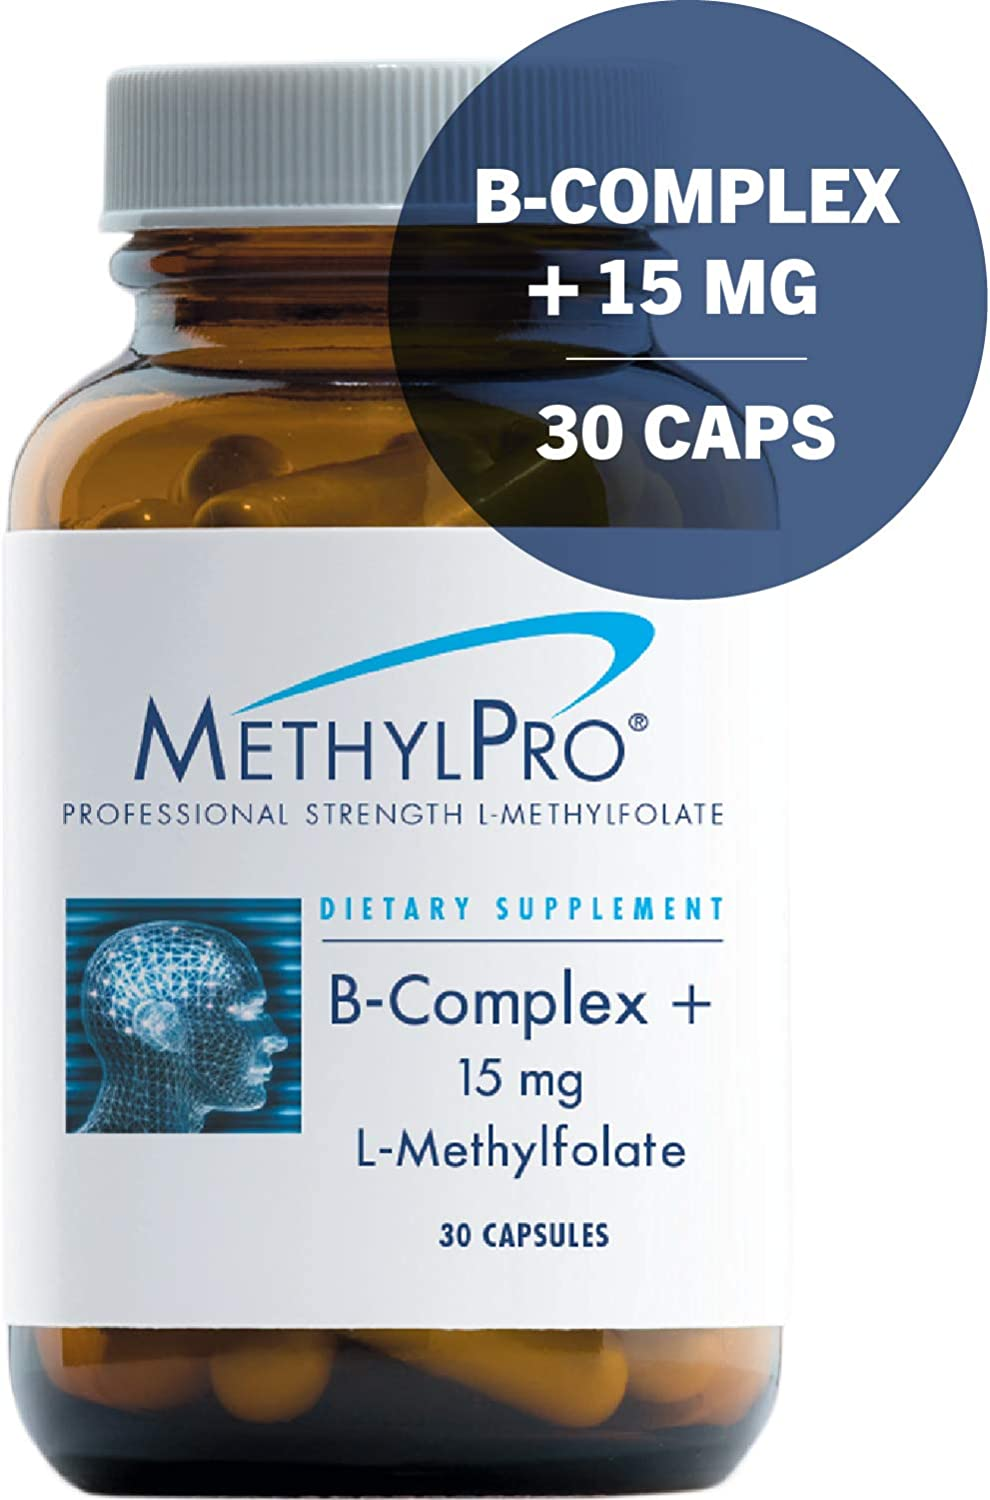 MethylPro B-Complex 15mg L-Methylfolate 30 Capsules – Professional Strength Active Folate for Energy Mood Support with Methyl B12 B6 as P-5-P, Non-GMO Gluten-Free